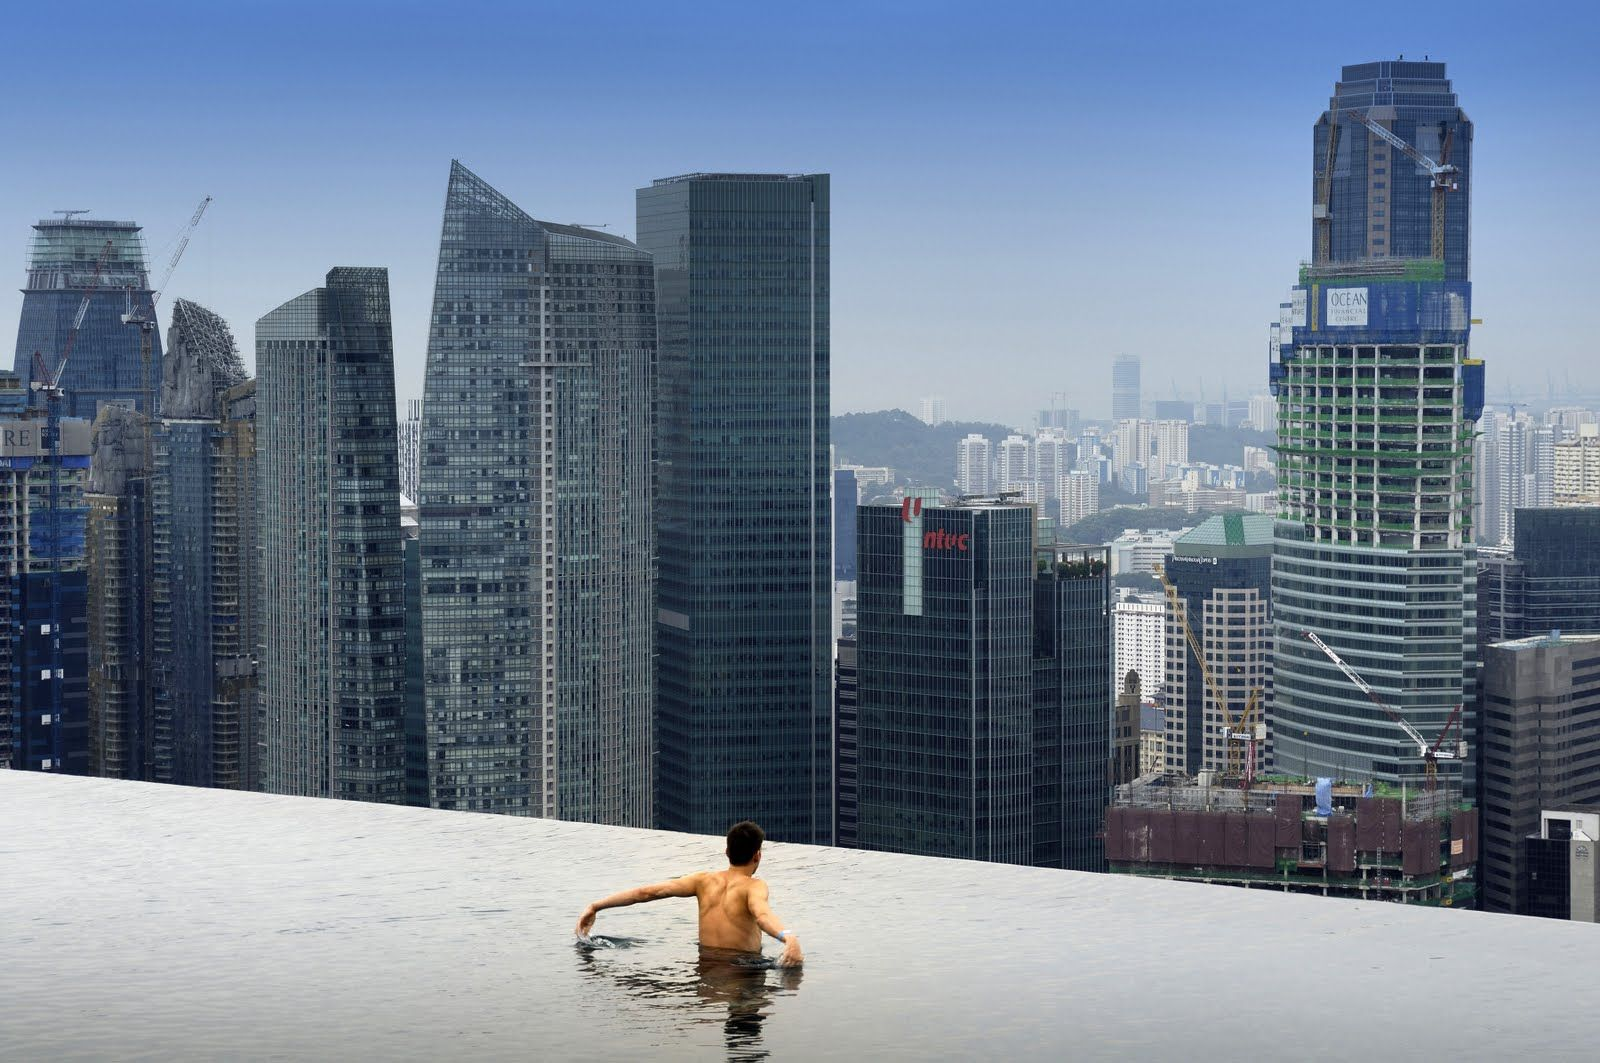 Amazing infinity pool on marina bay sand hotel in singapore by moshe safdie architects